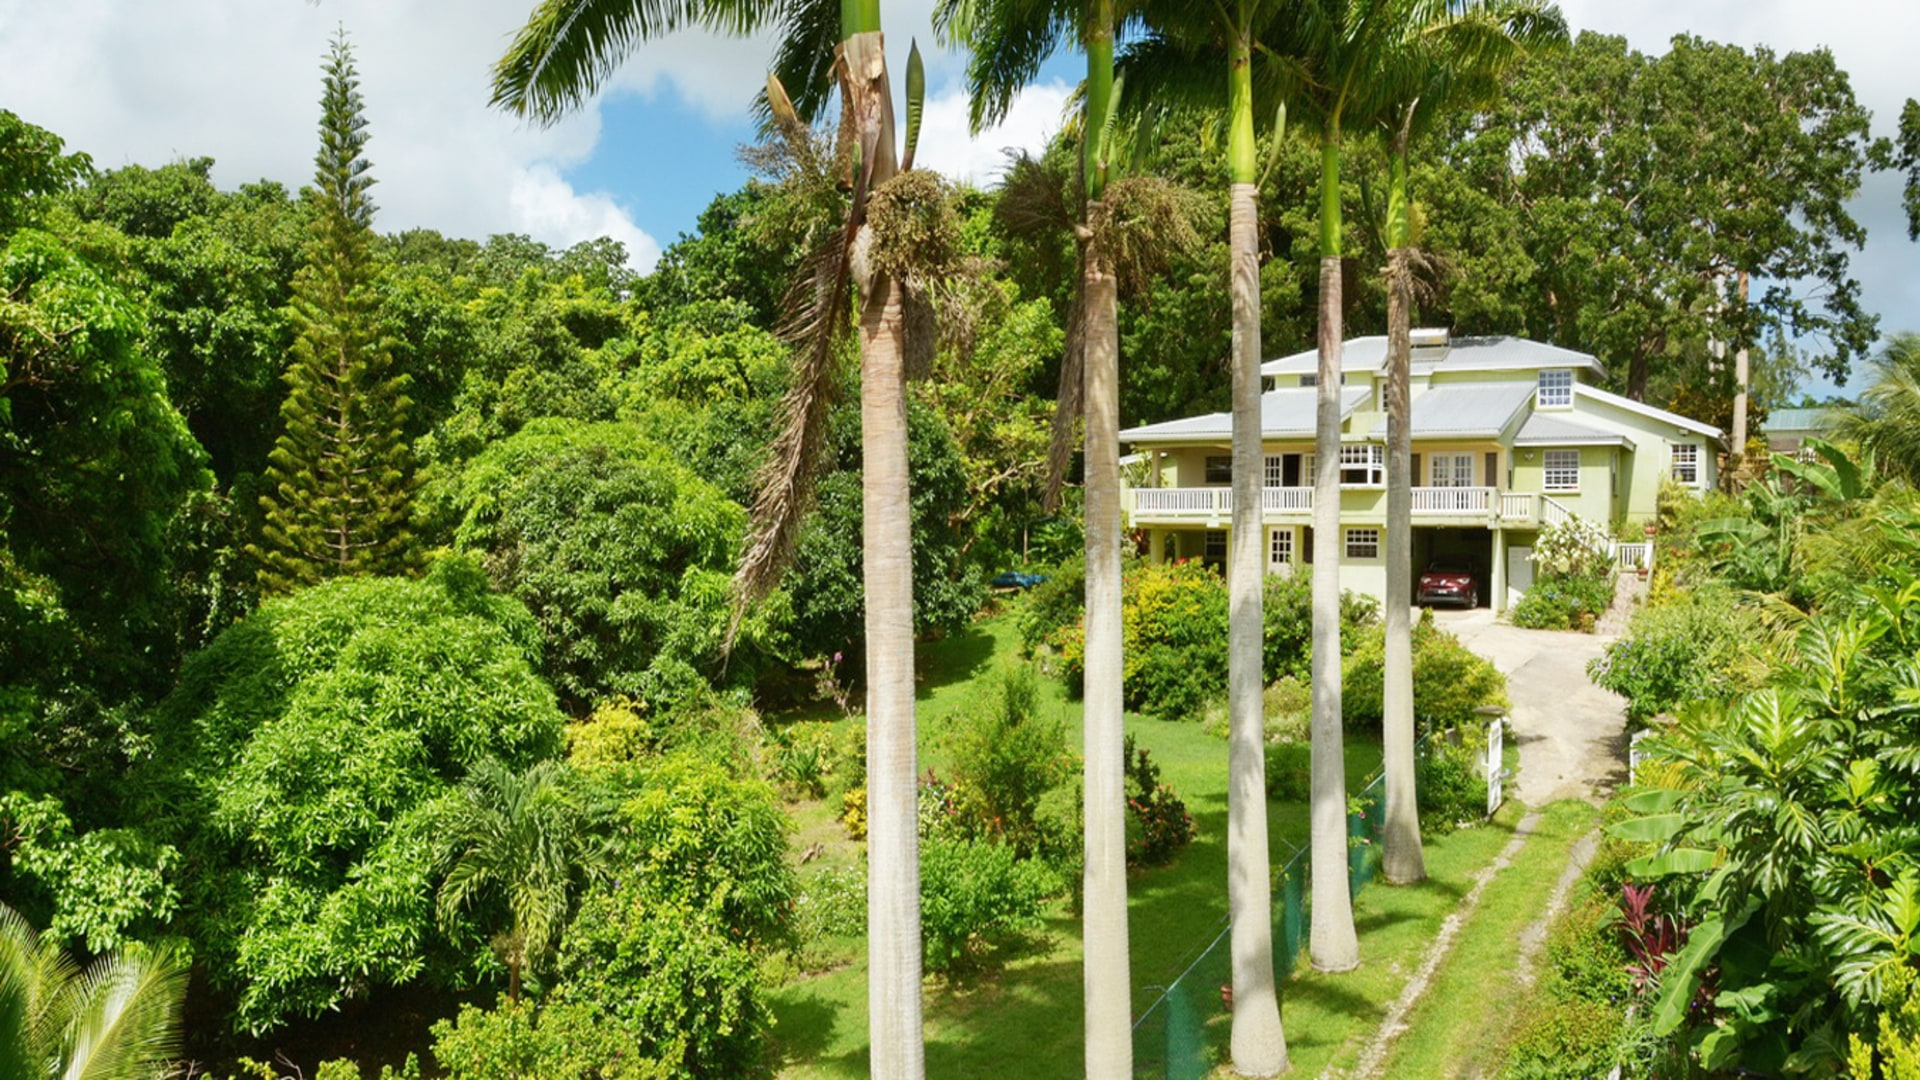 fairview plantation no 4 house barbados luxury homes real